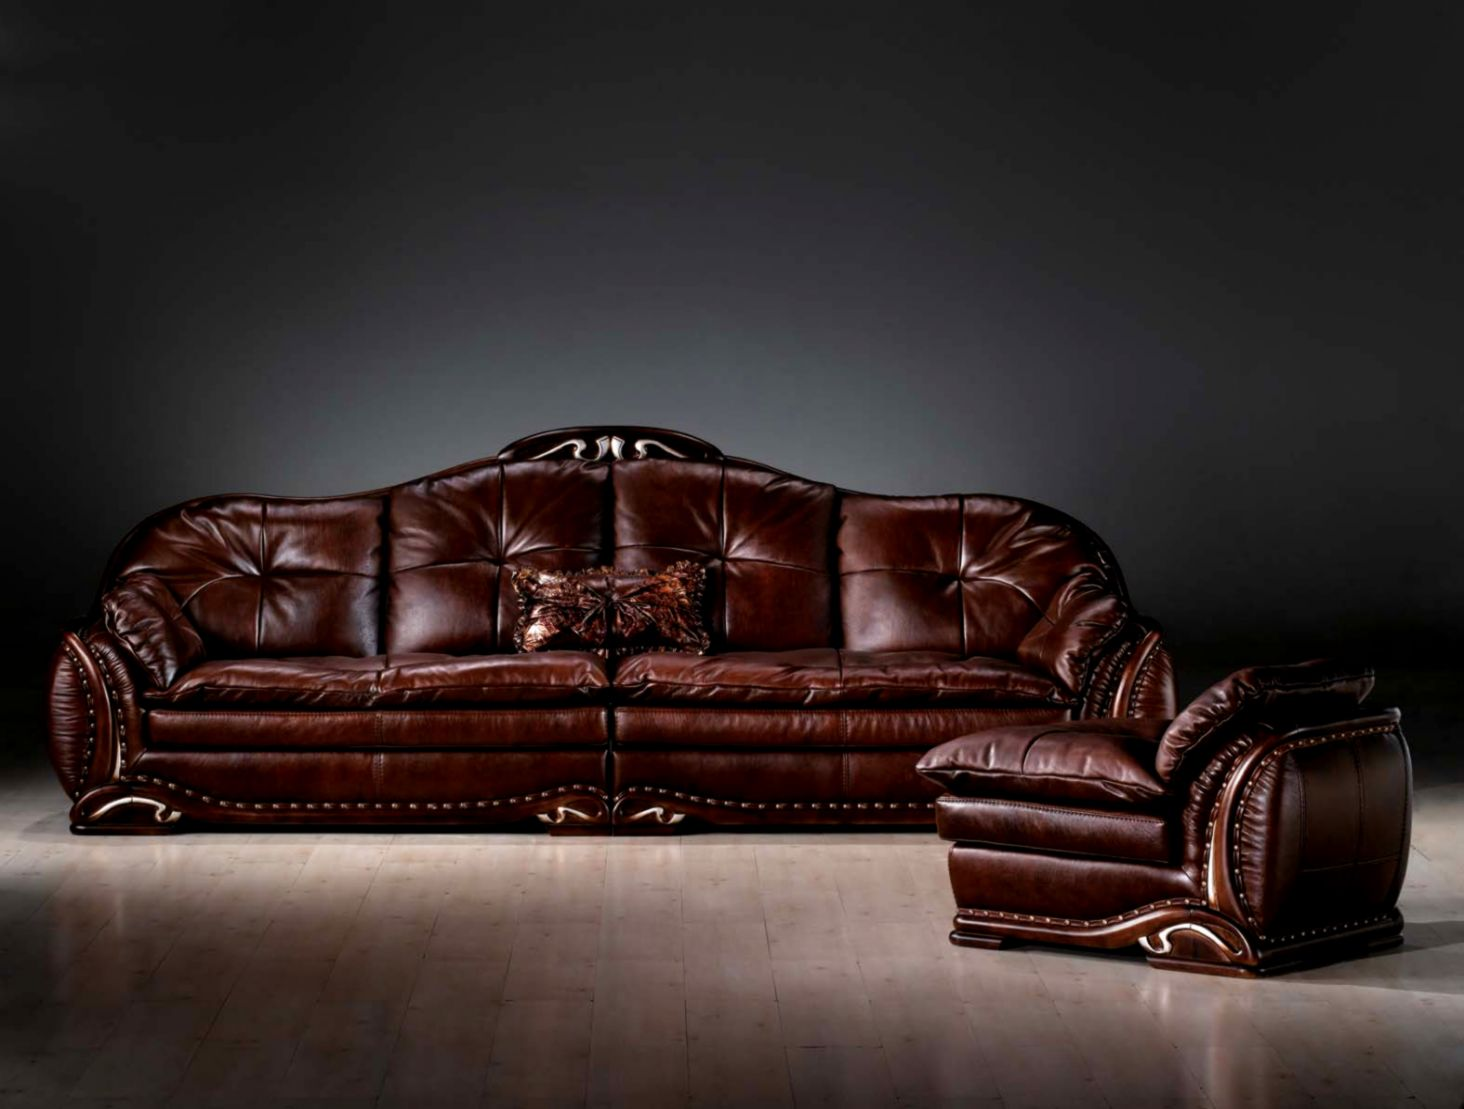 Leather Upholstery Sofa Style Hd Wallpaper Wallpapers Dope